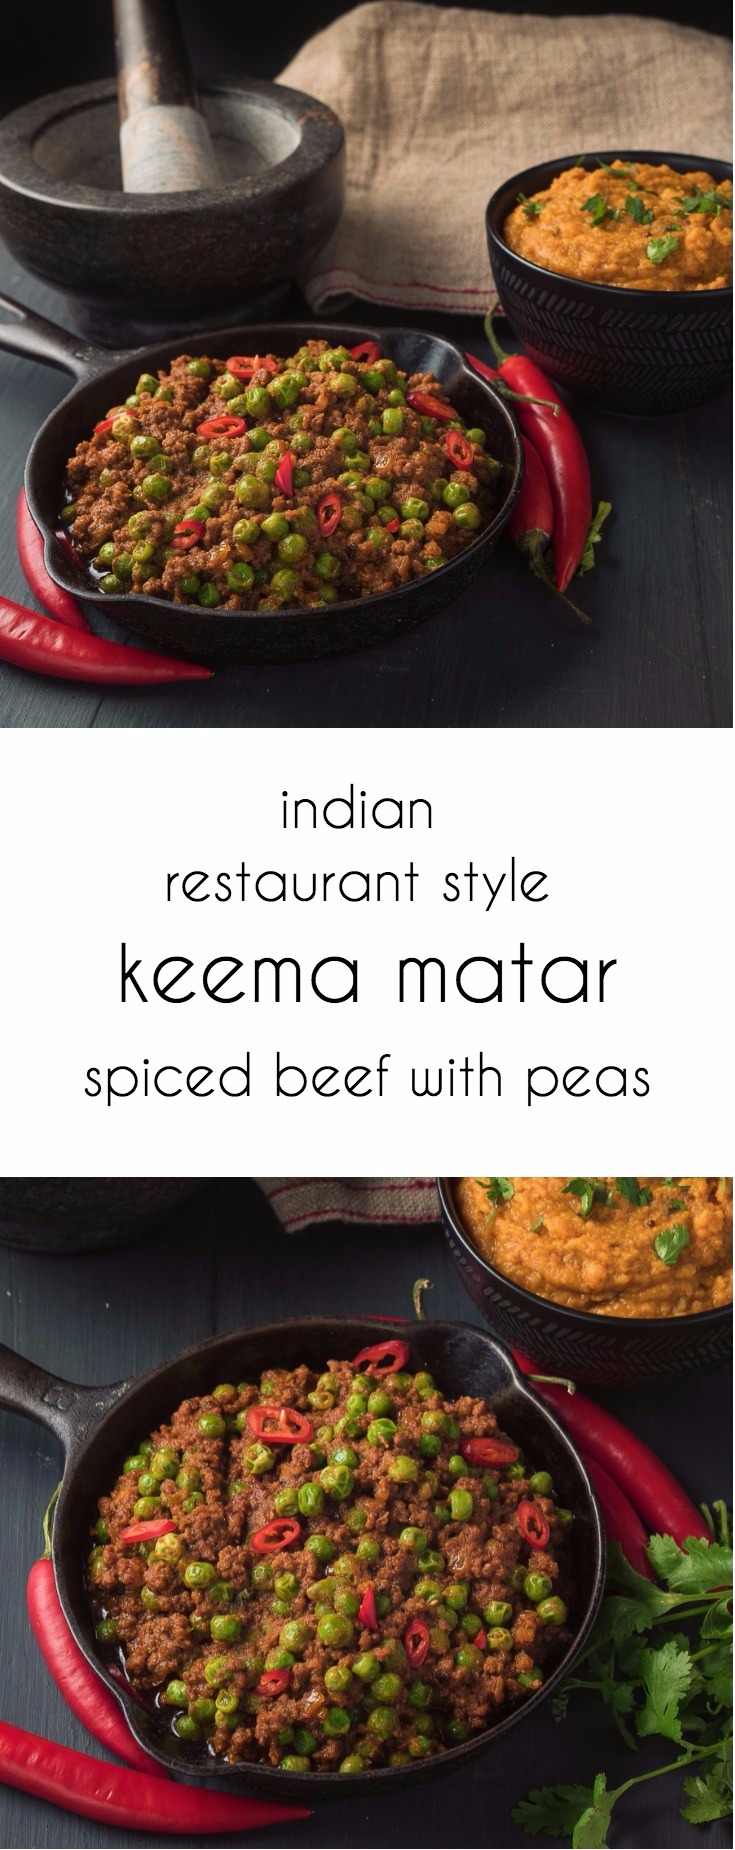 Indian restaurant keema matar is a delicious dry pea and lamb or beef curry.